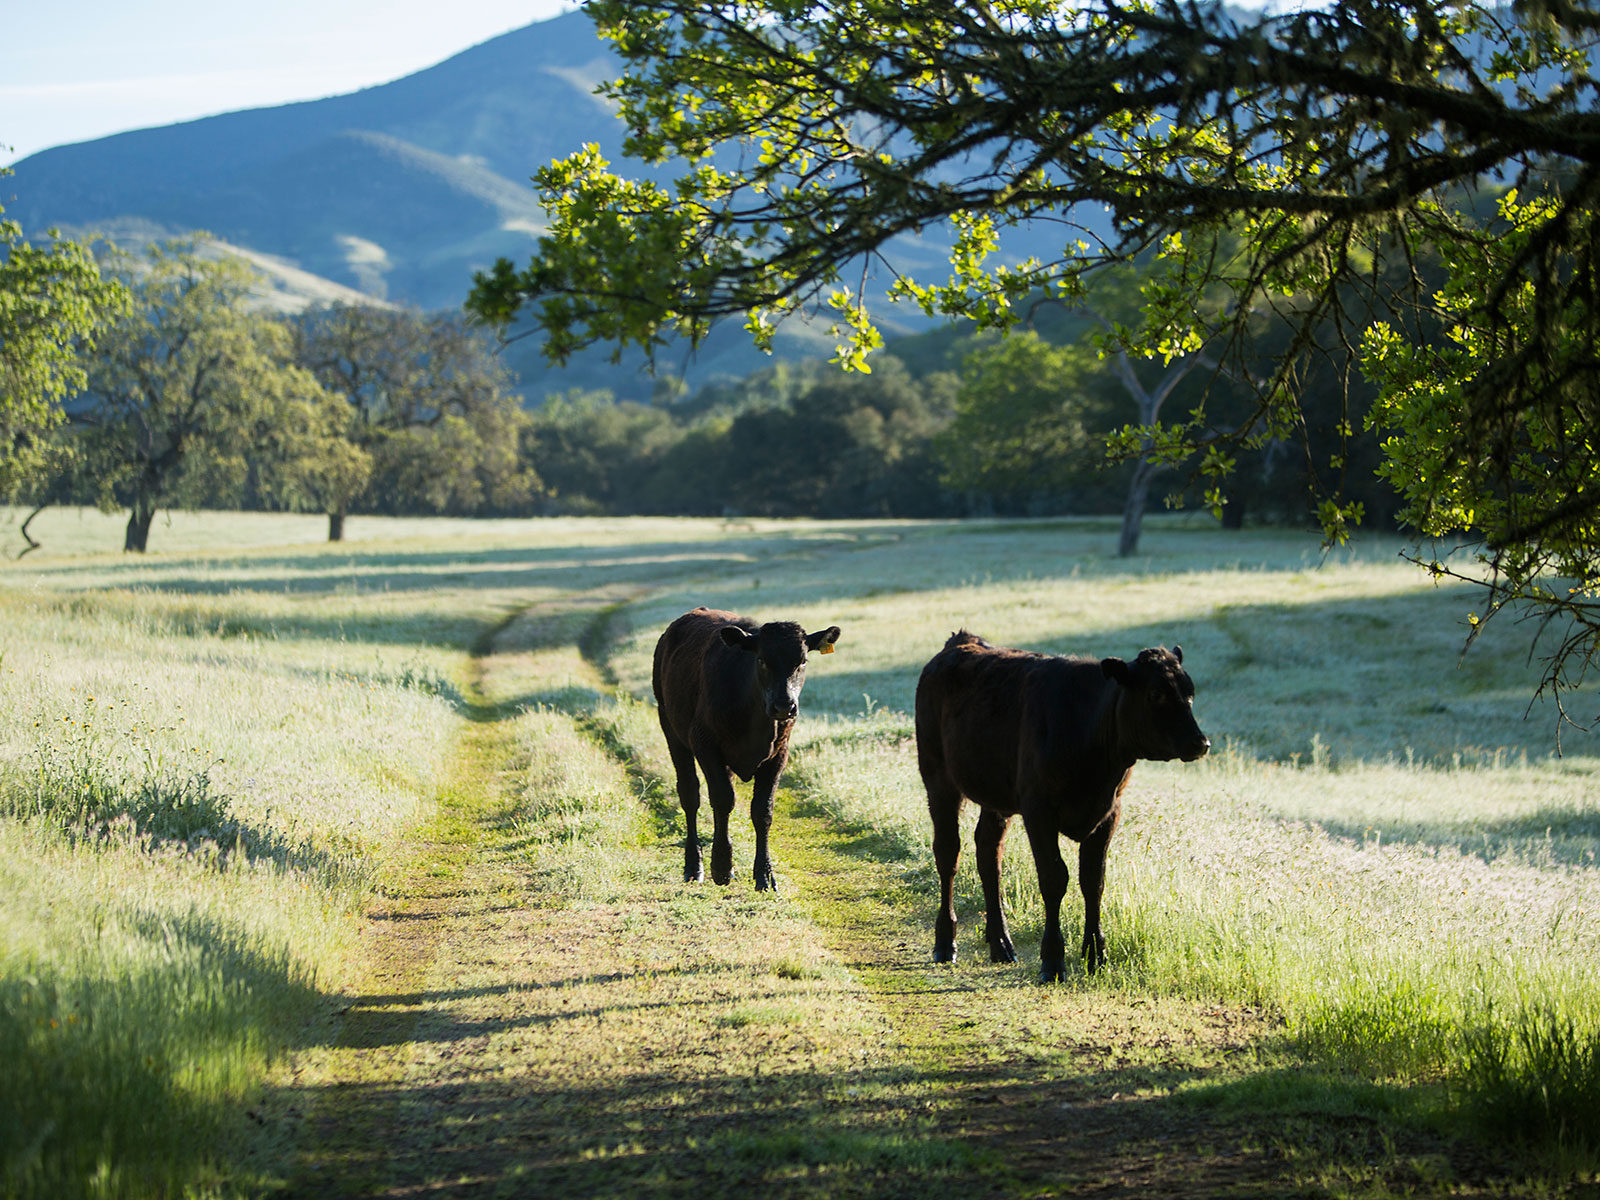 One Ranch, One Restaurant: The Bear and Star Is the Central Coast's Wagyu Wonderland